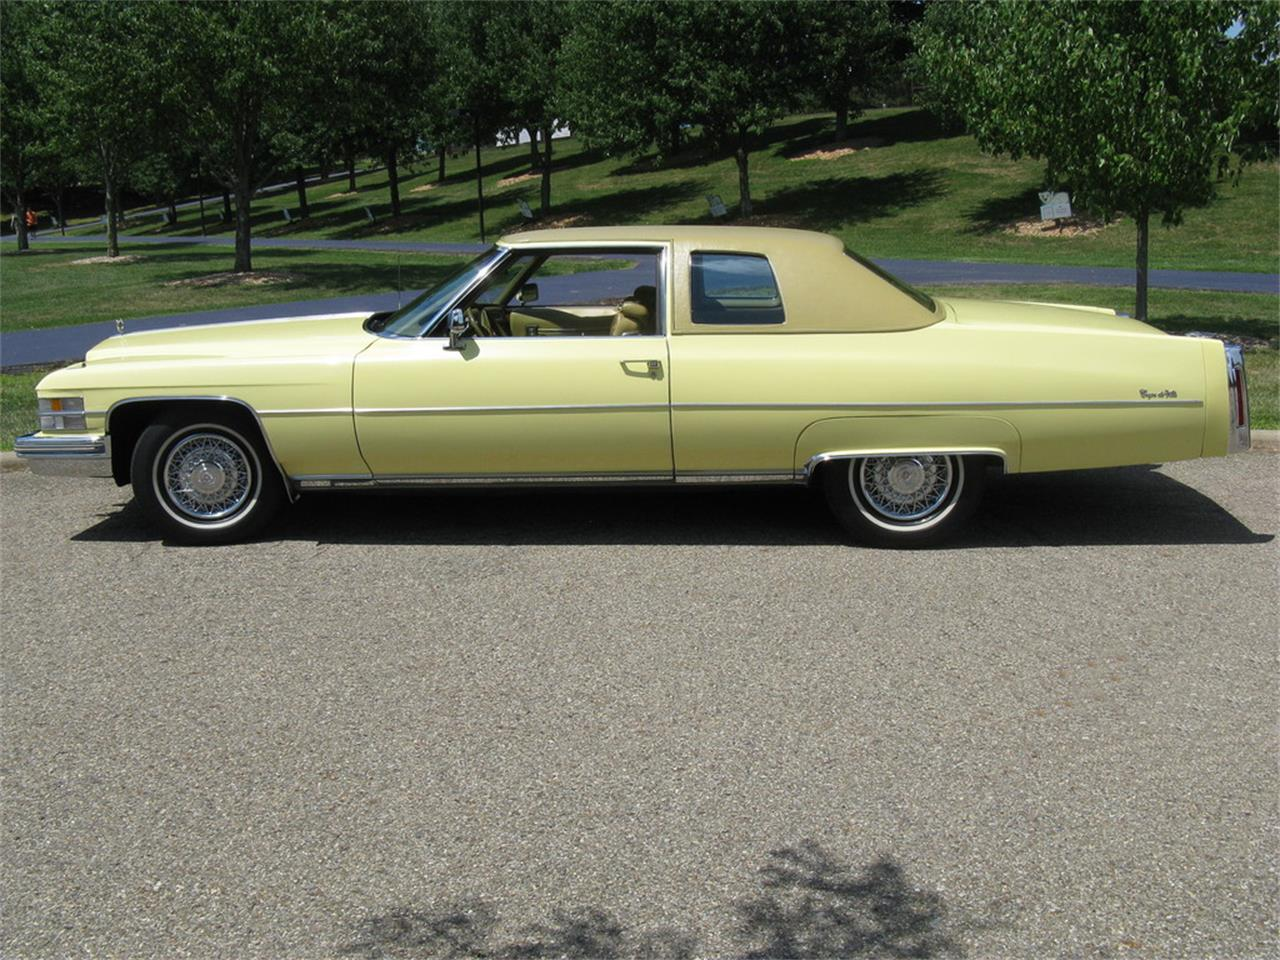 Large Picture of 1974 Cadillac Coupe DeVille - $13,500.00 - J3ZZ